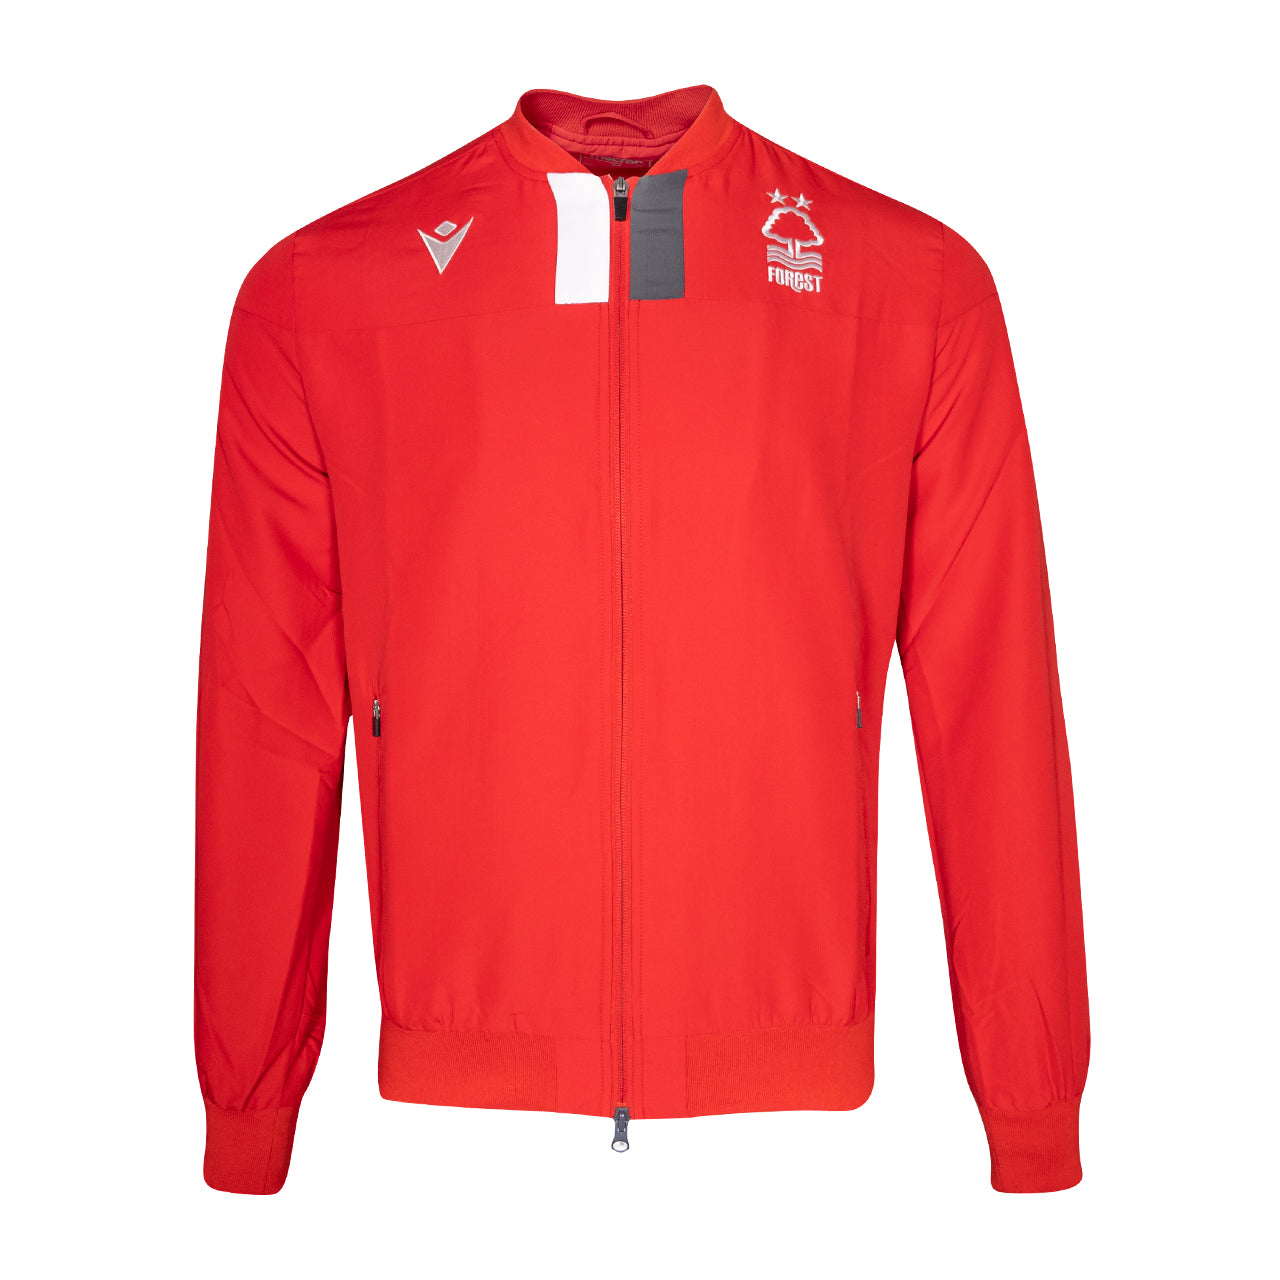 NFFC Mens Red Player Full Zip Training Top 19/20